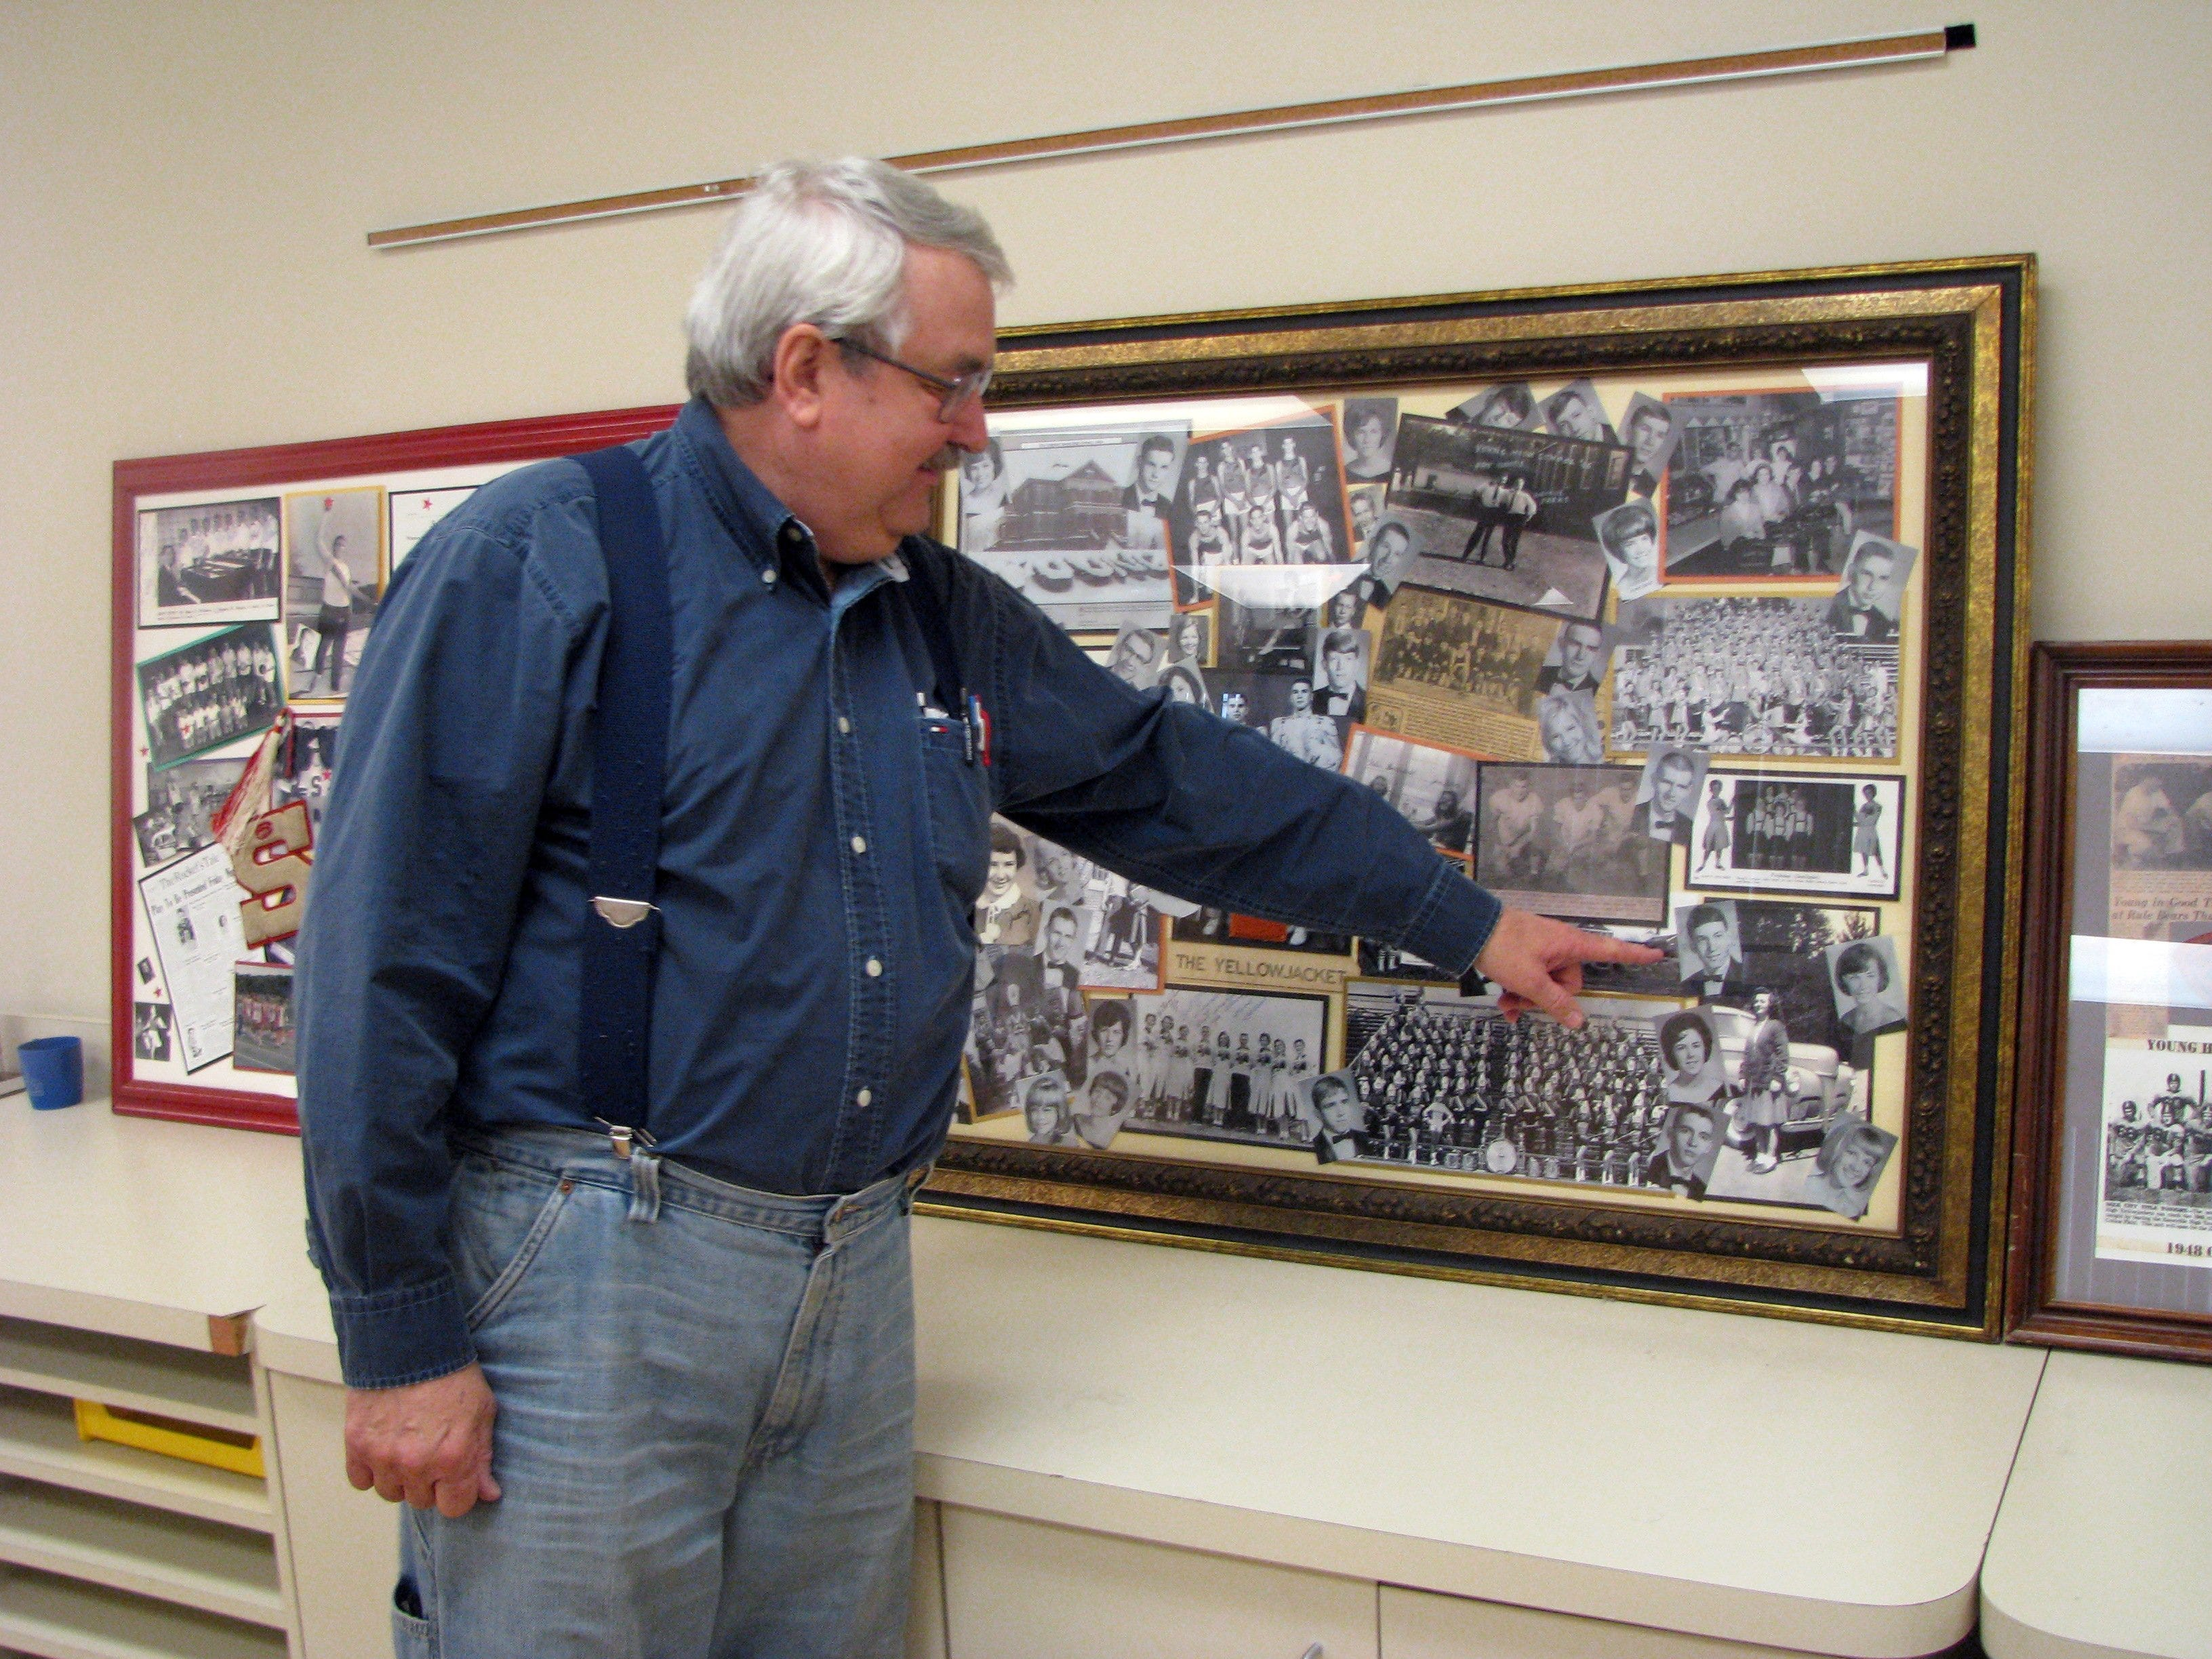 Knox County Museum of Education volunteer Jody Davis points out his senior picture in a display on Young High School. Young High School in South Knoxville existed 1912-1976.